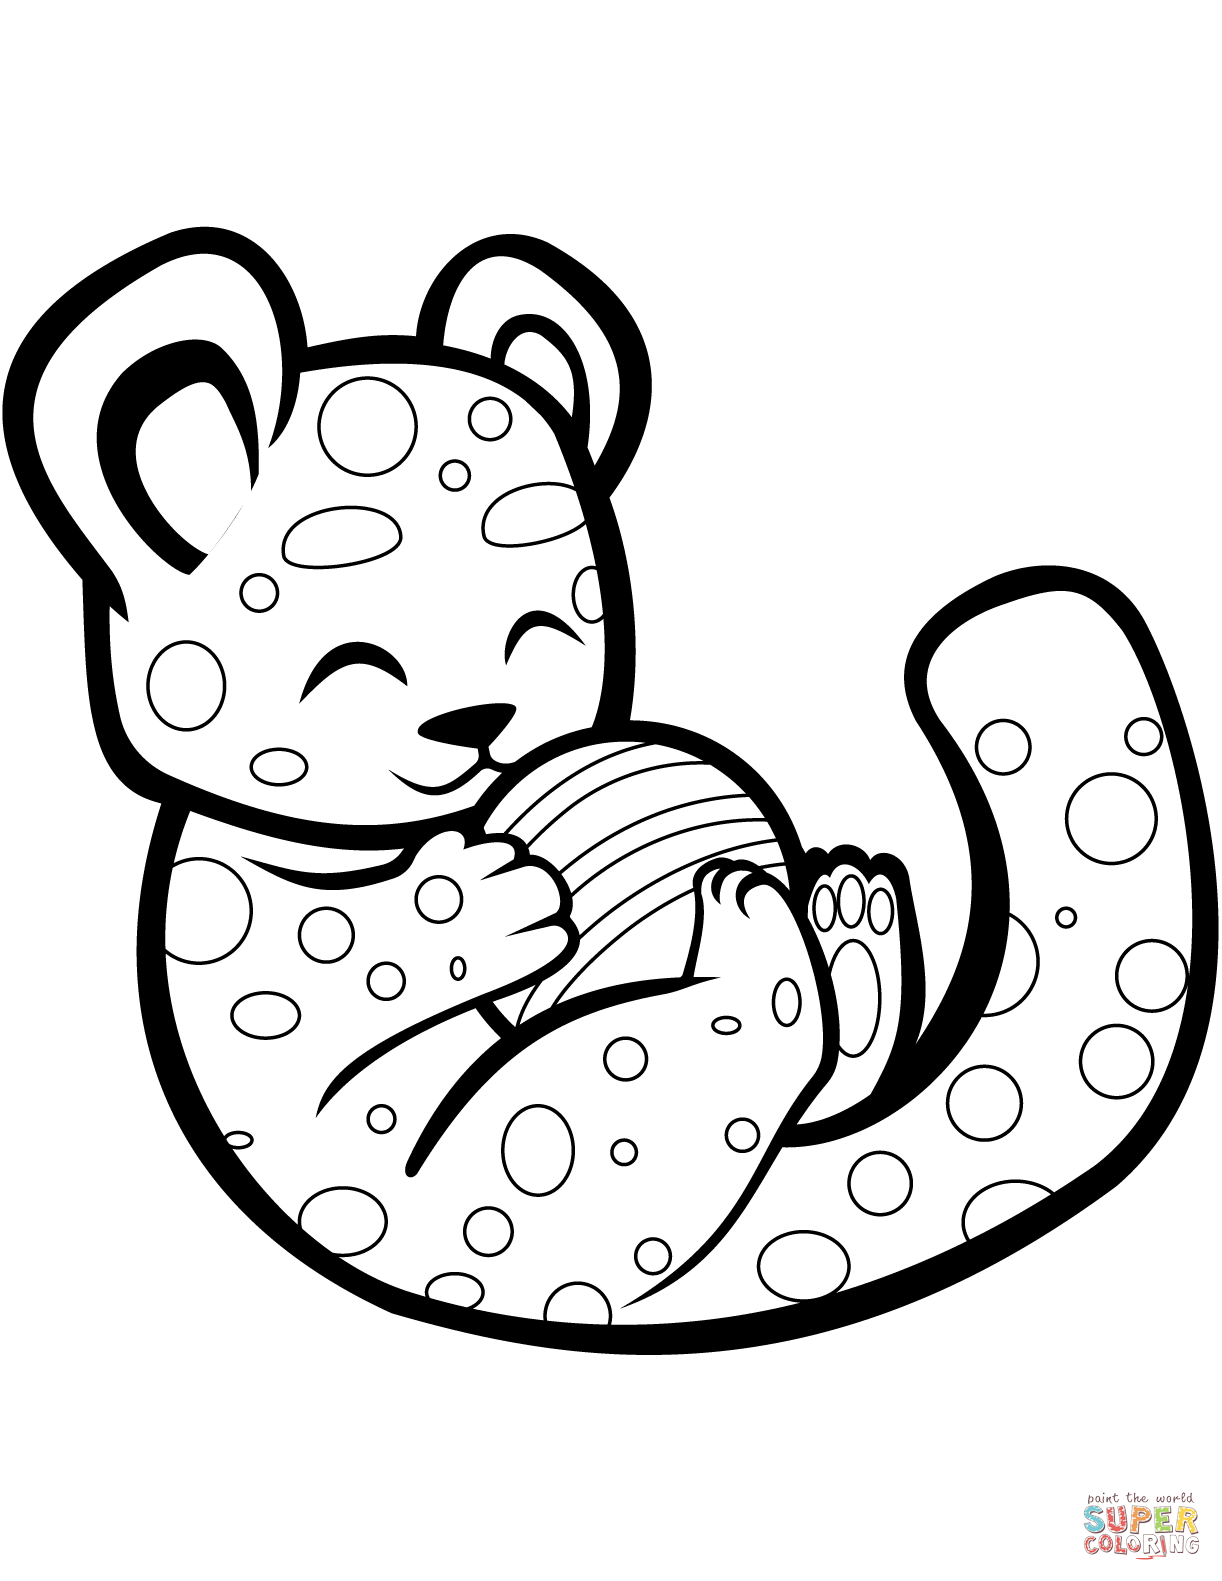 coloring pictures of cheetahs free cheetah coloring pages cheetahs coloring pictures of